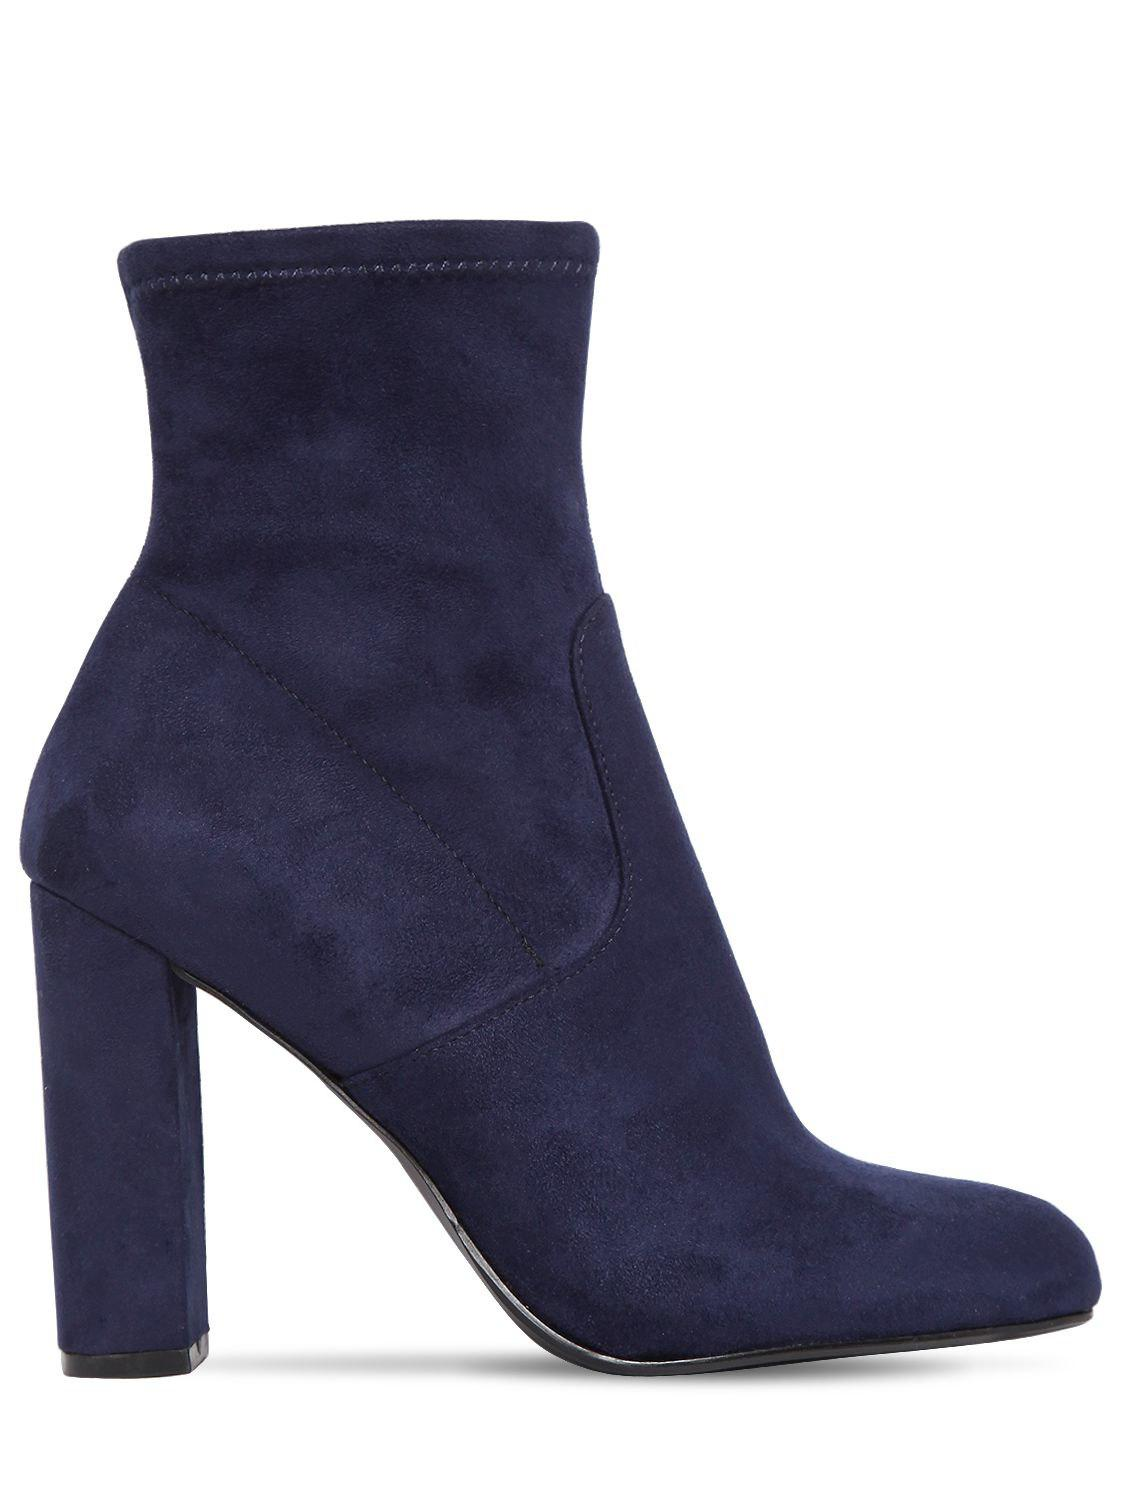 8ee9a9ede53 Steve Madden 100mm Editt Stretch Faux Suede Boots in Blue - Lyst